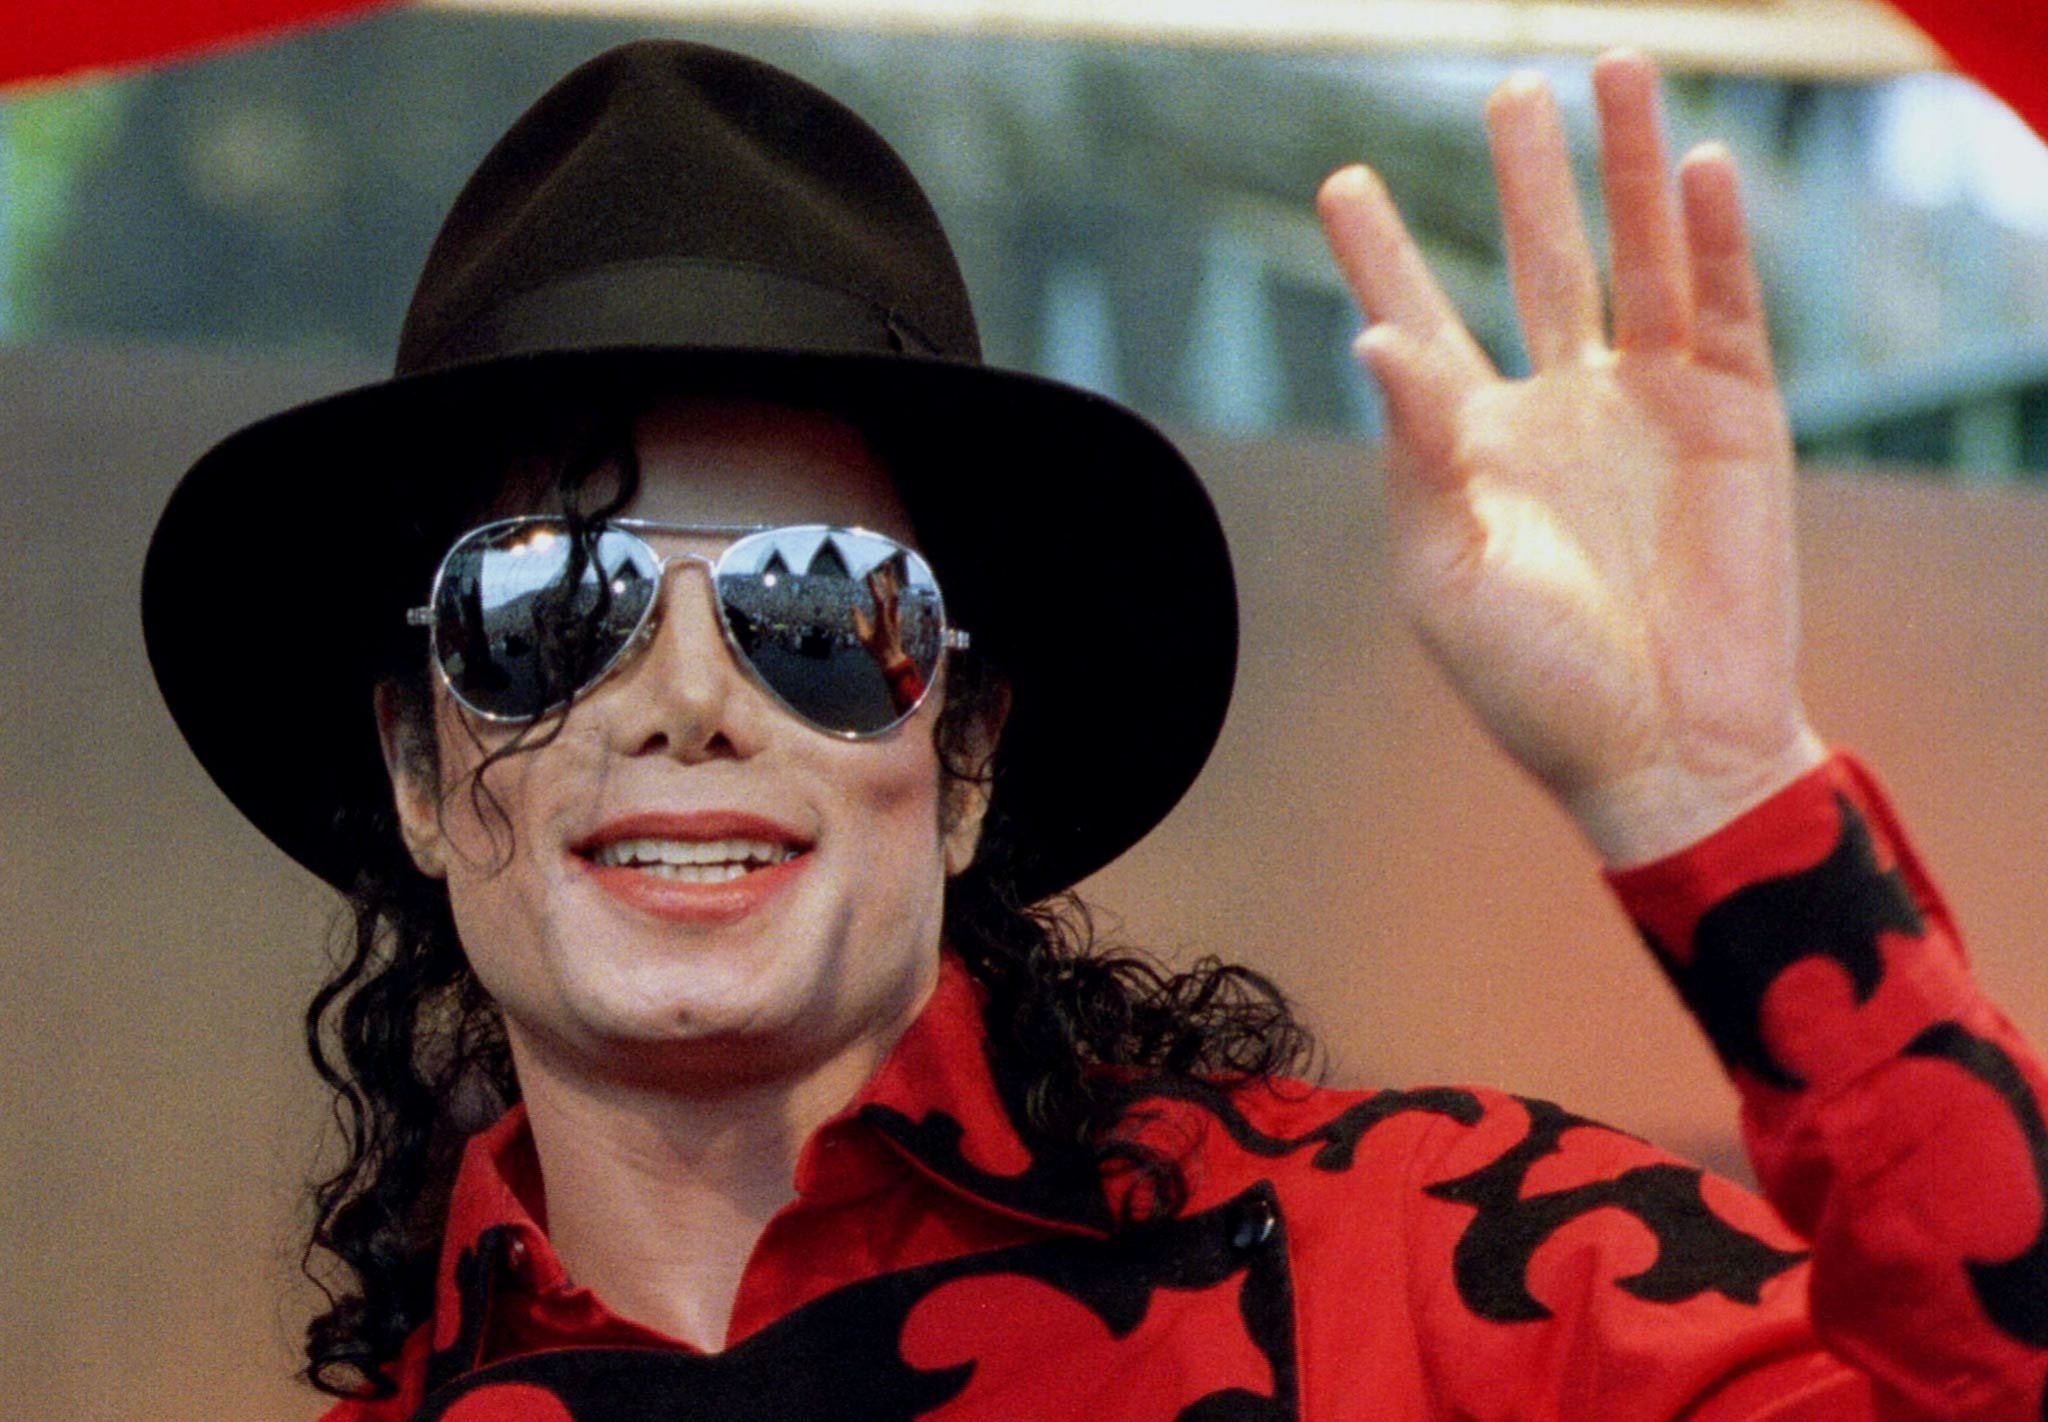 Michael Jackson Estate sells music to Sony in $750m deal